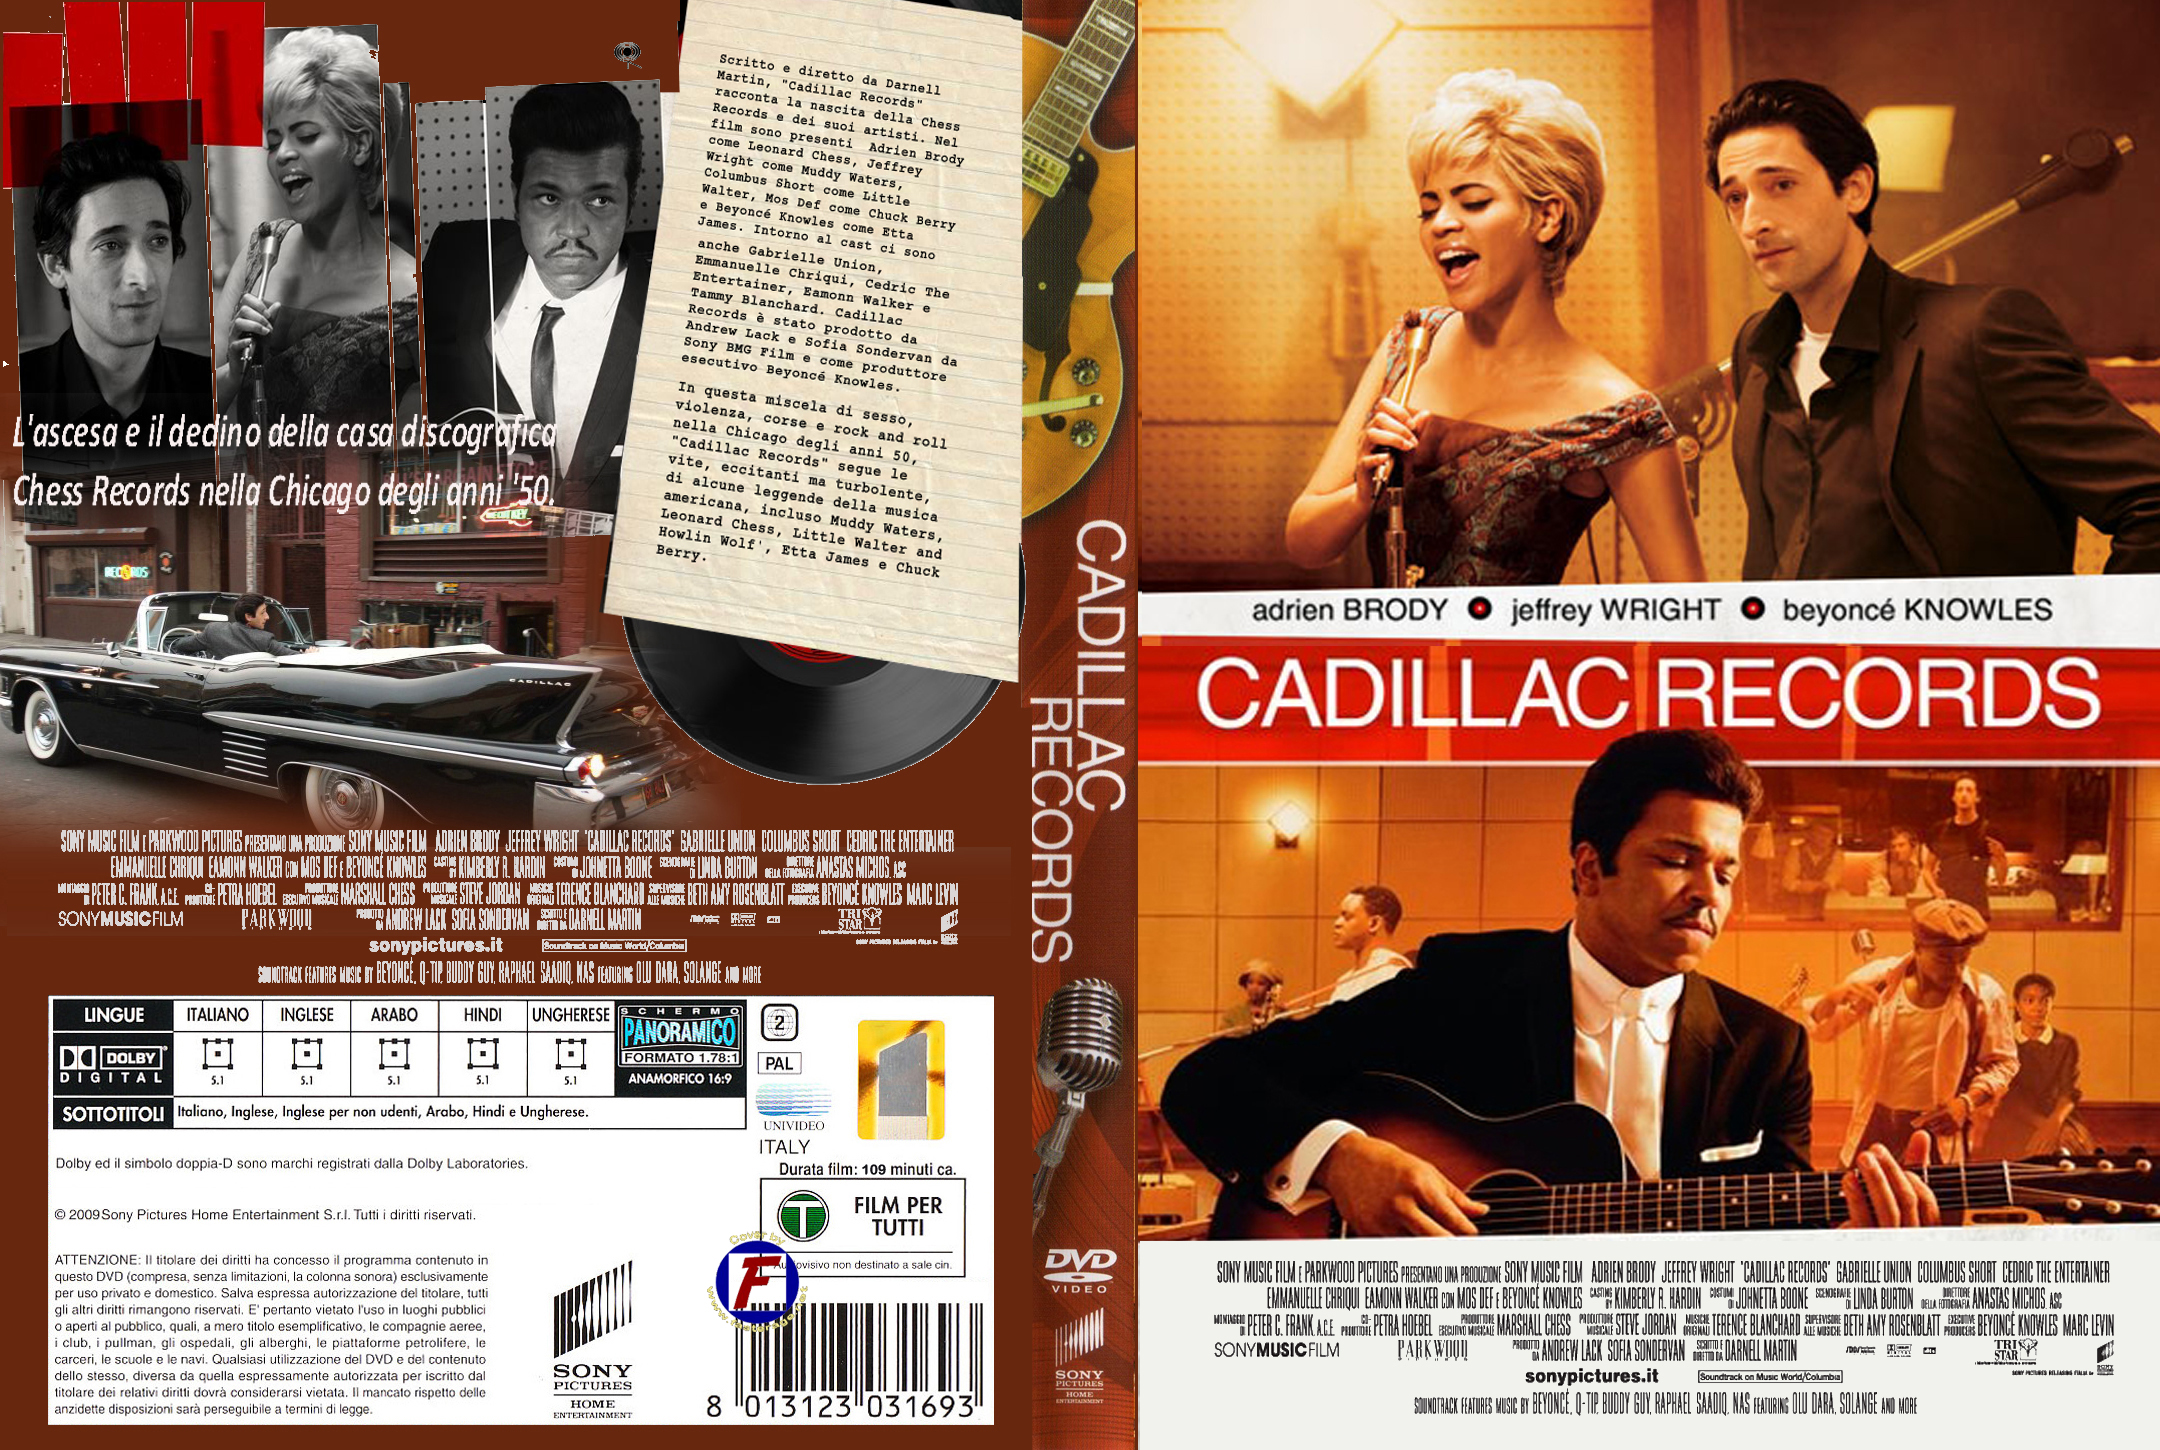 cadillac records 2008 movie. Cars Review. Best American Auto & Cars Review